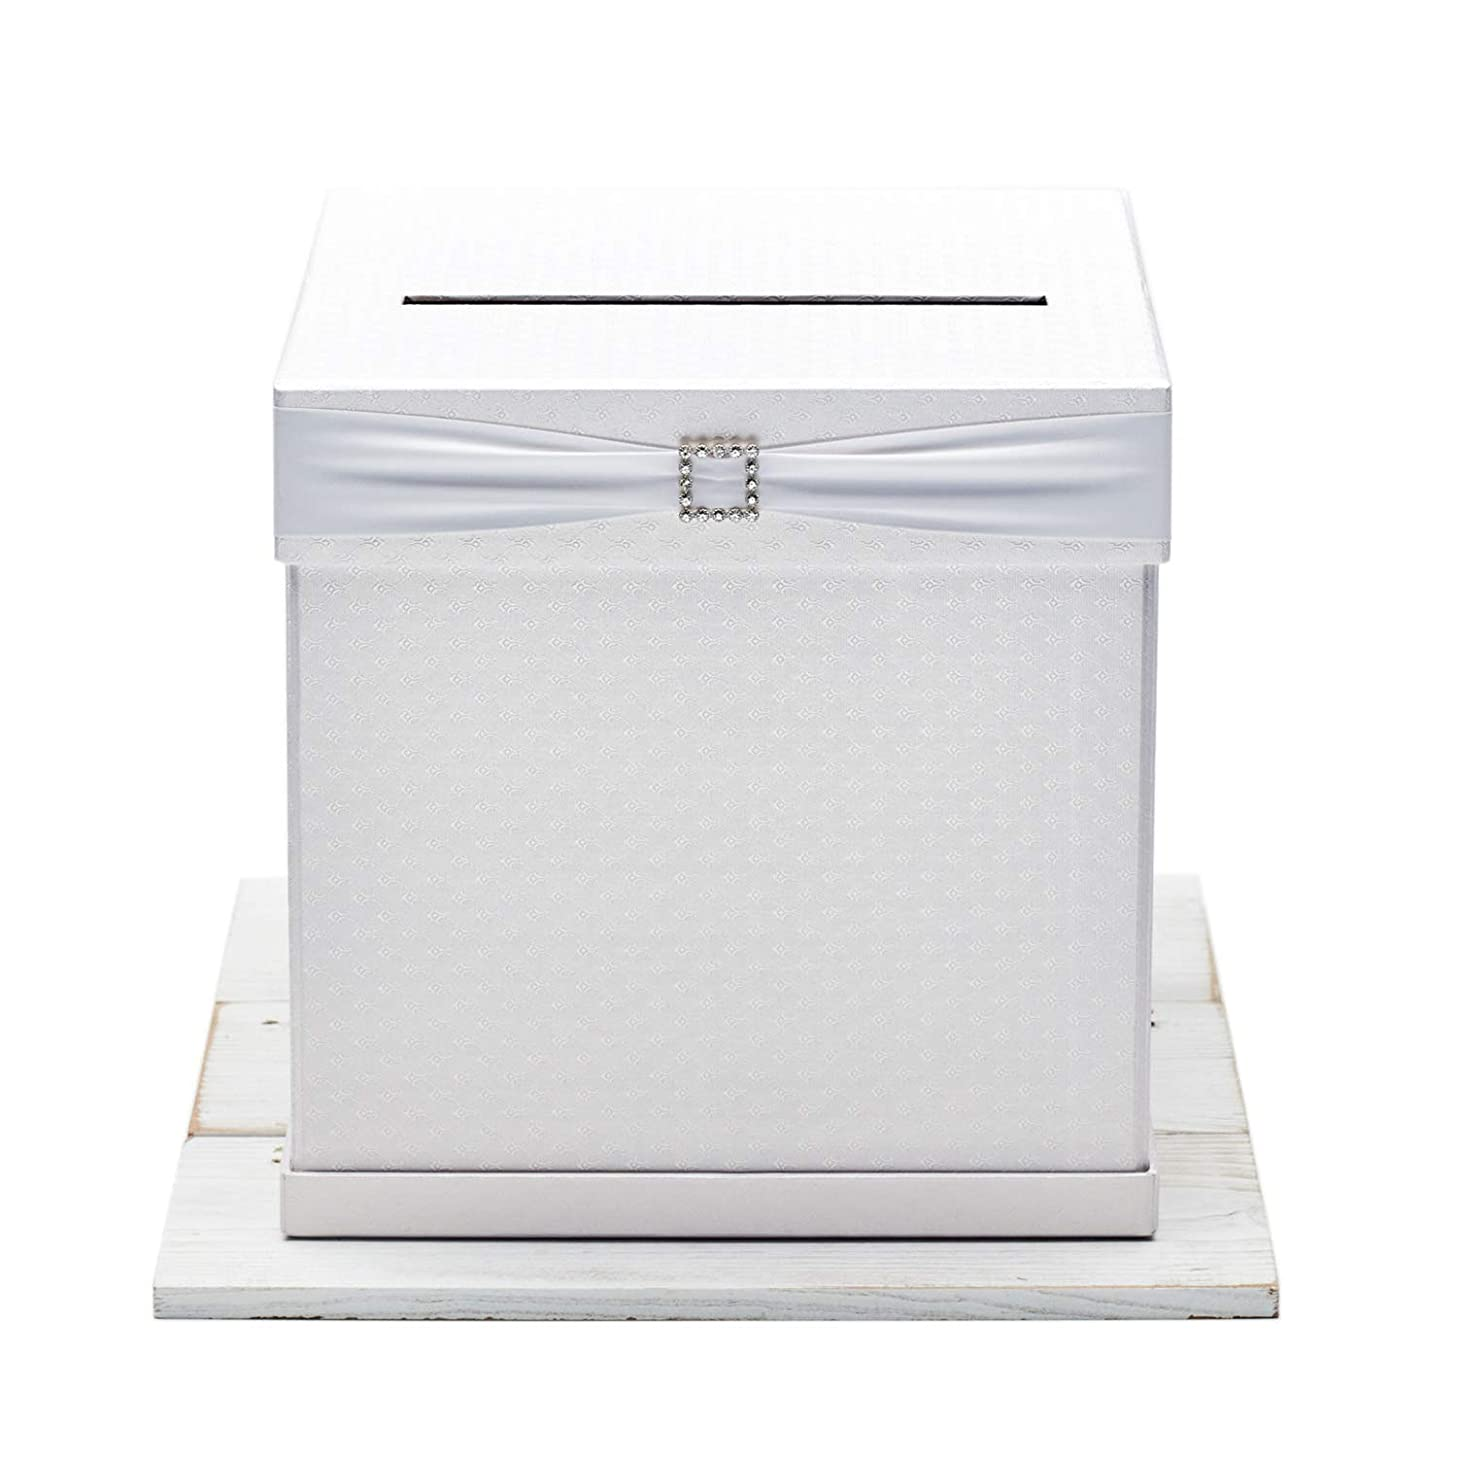 Hayley Cherie - Gift Card Box with Rhinestone Slider & 7 Ribbon Colors - White Textured Finish - Large Size 10